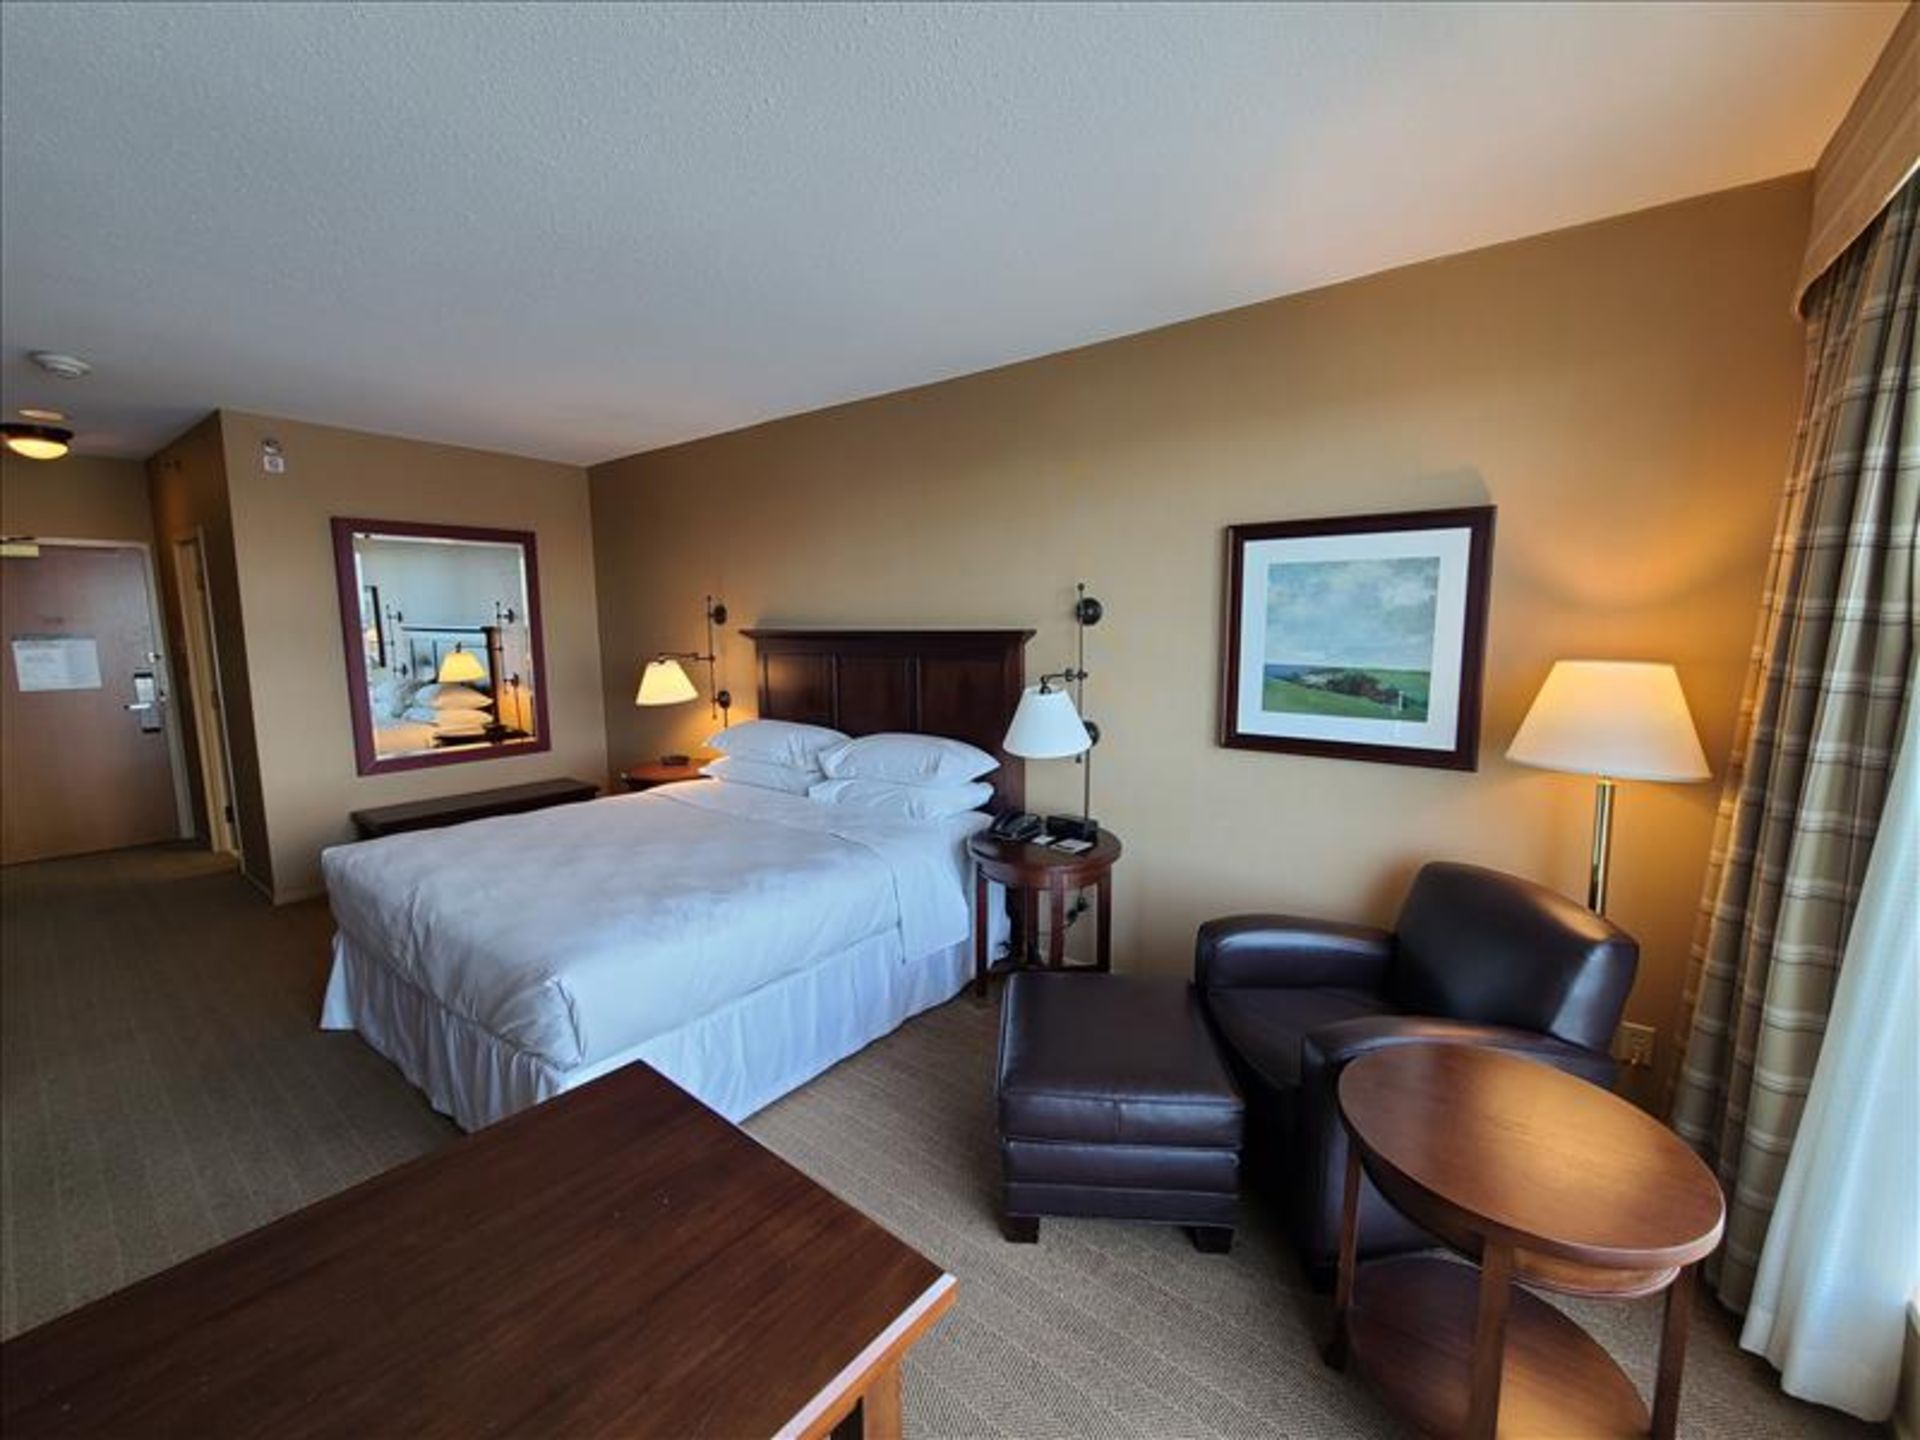 King Bedroom featuring: king size bed and frame, wood headboard, night stand, desk, desk chair, side